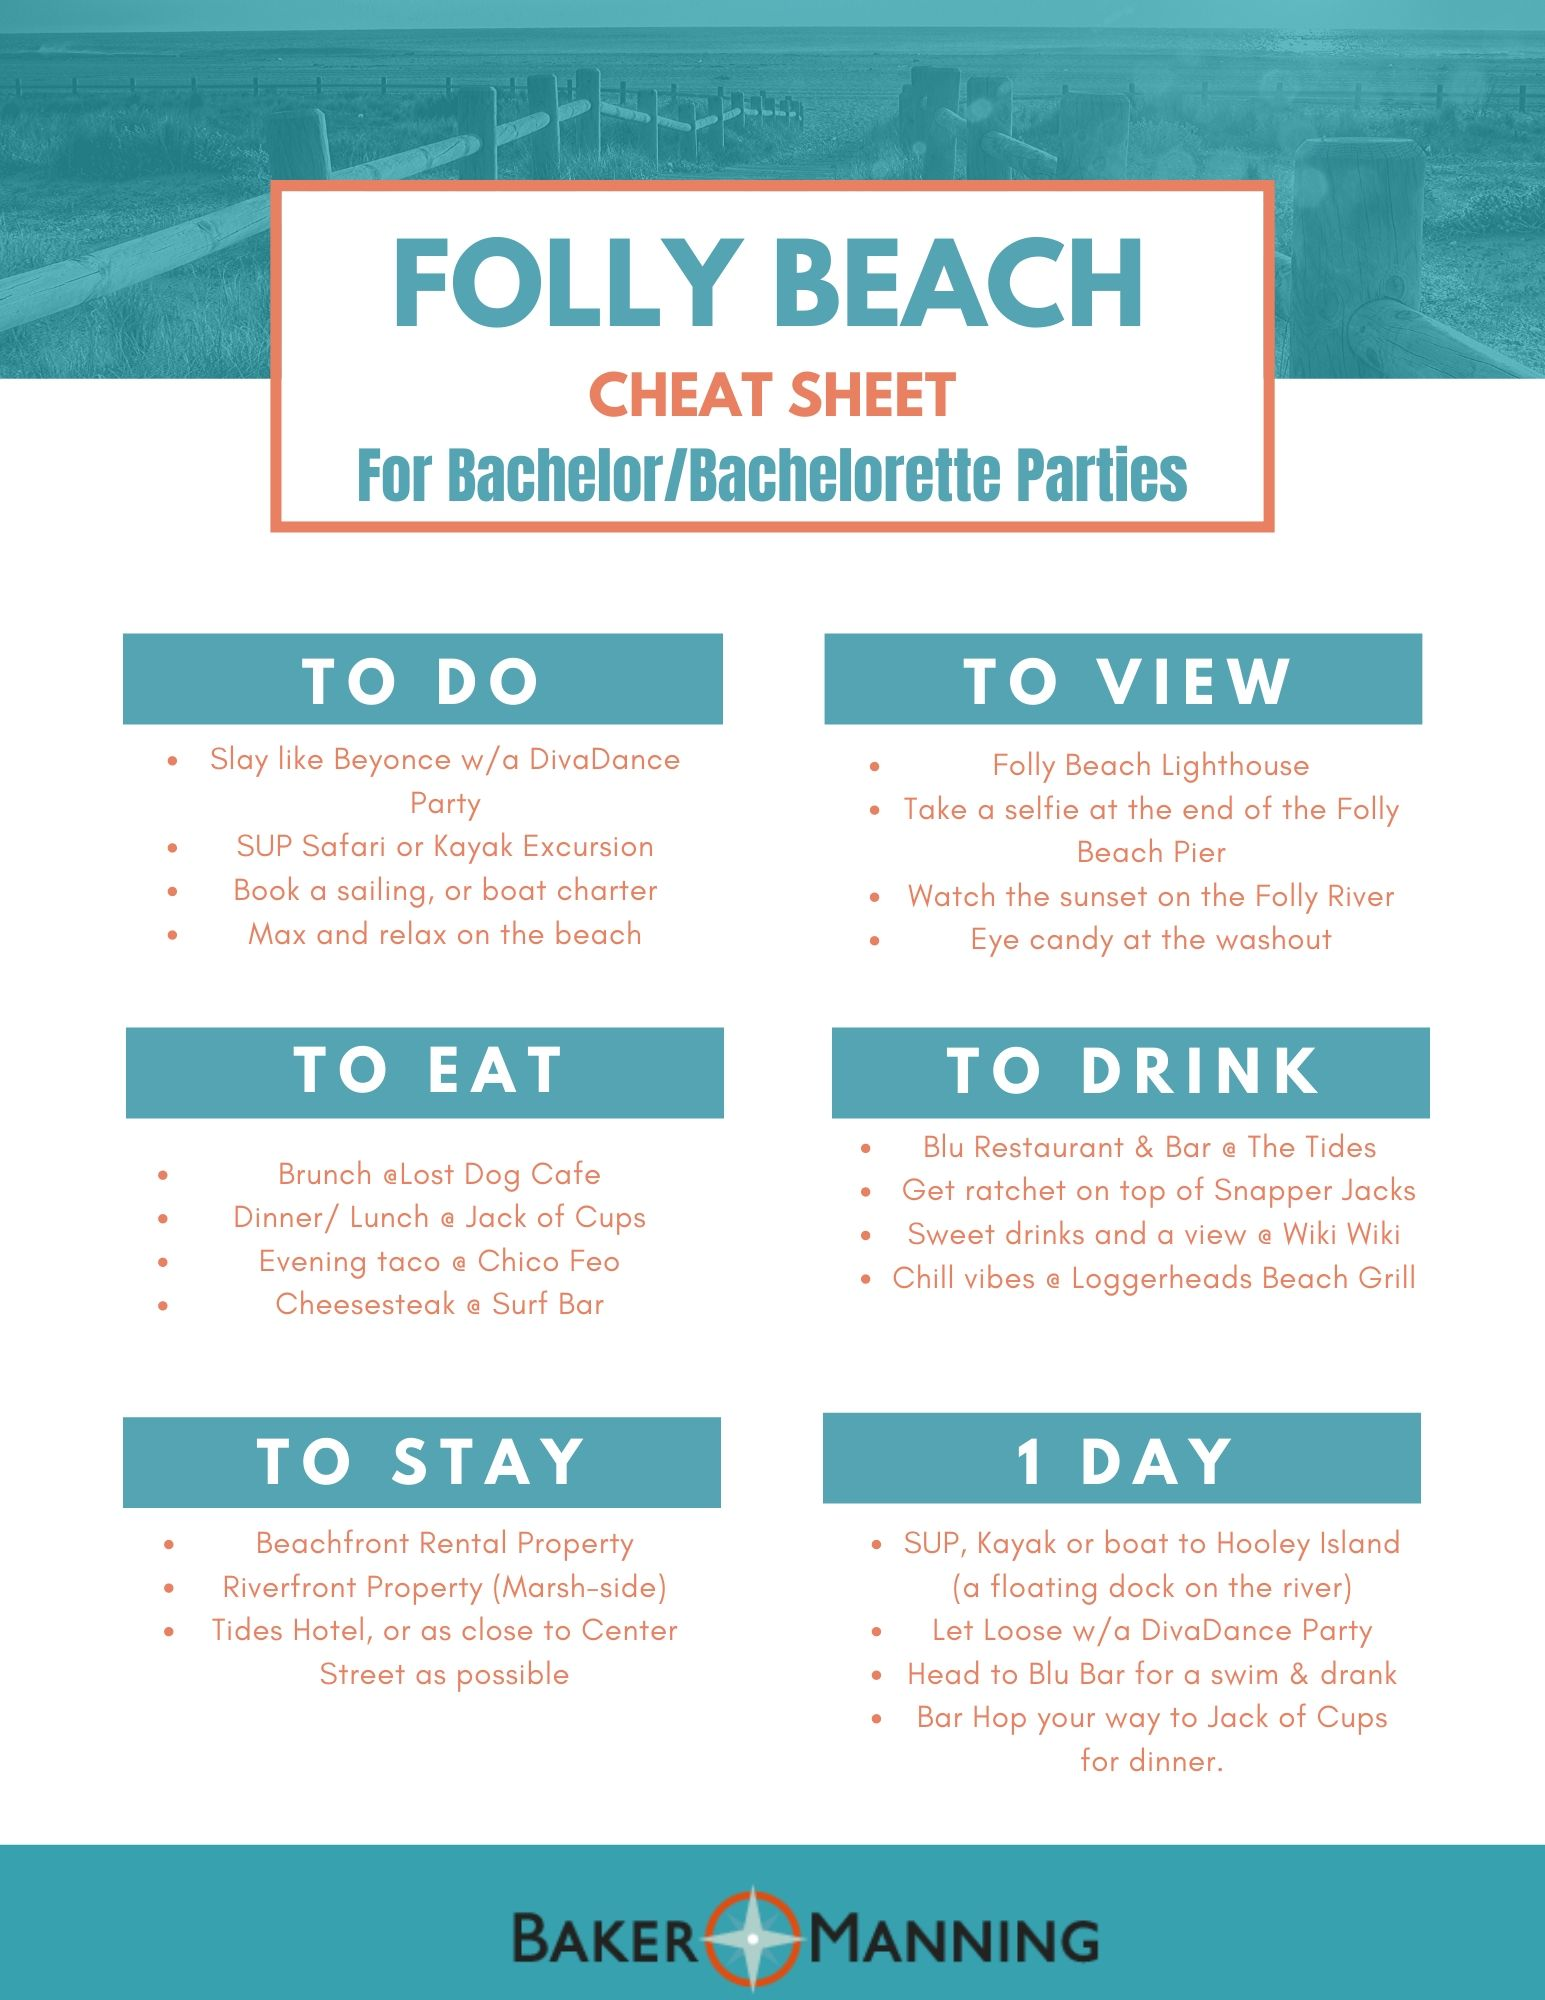 Folly Beach Cheat Sheet 2.0